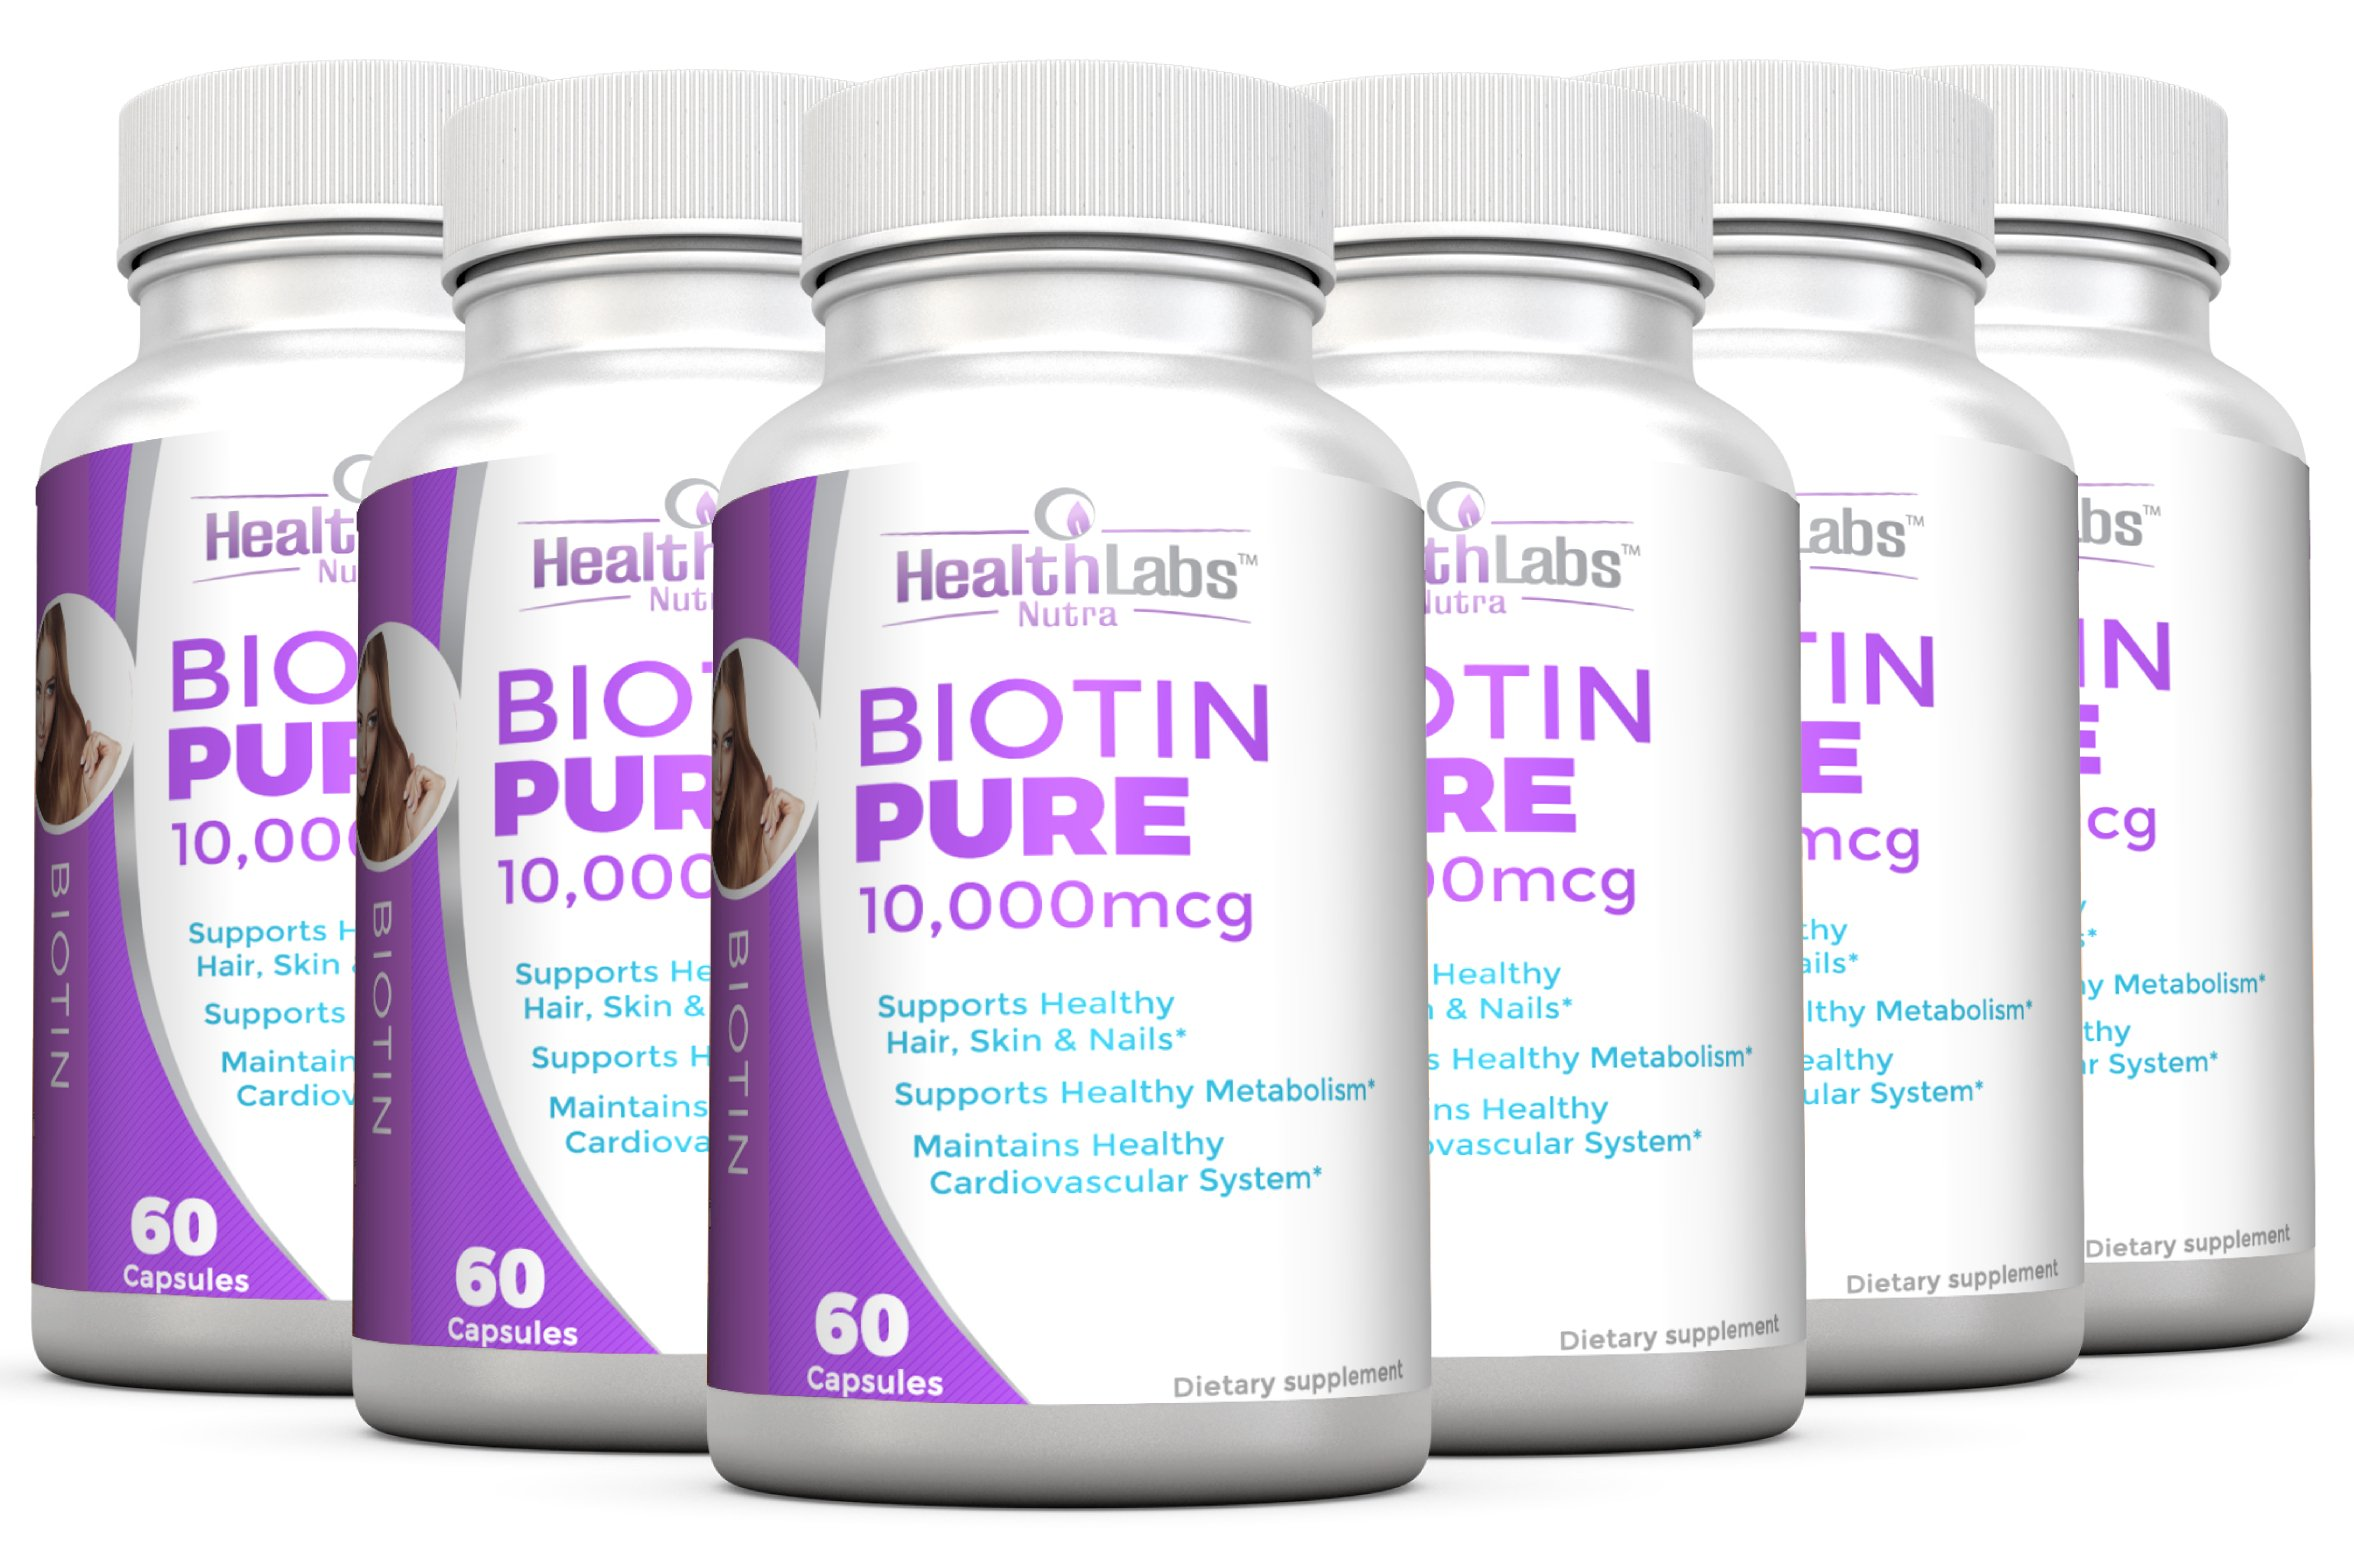 Health Labs Nutra Biotin Pure 10,000mcg per Veggie Capsule- Promotes Healthier Skin, Hair and Nails - Pack of 6